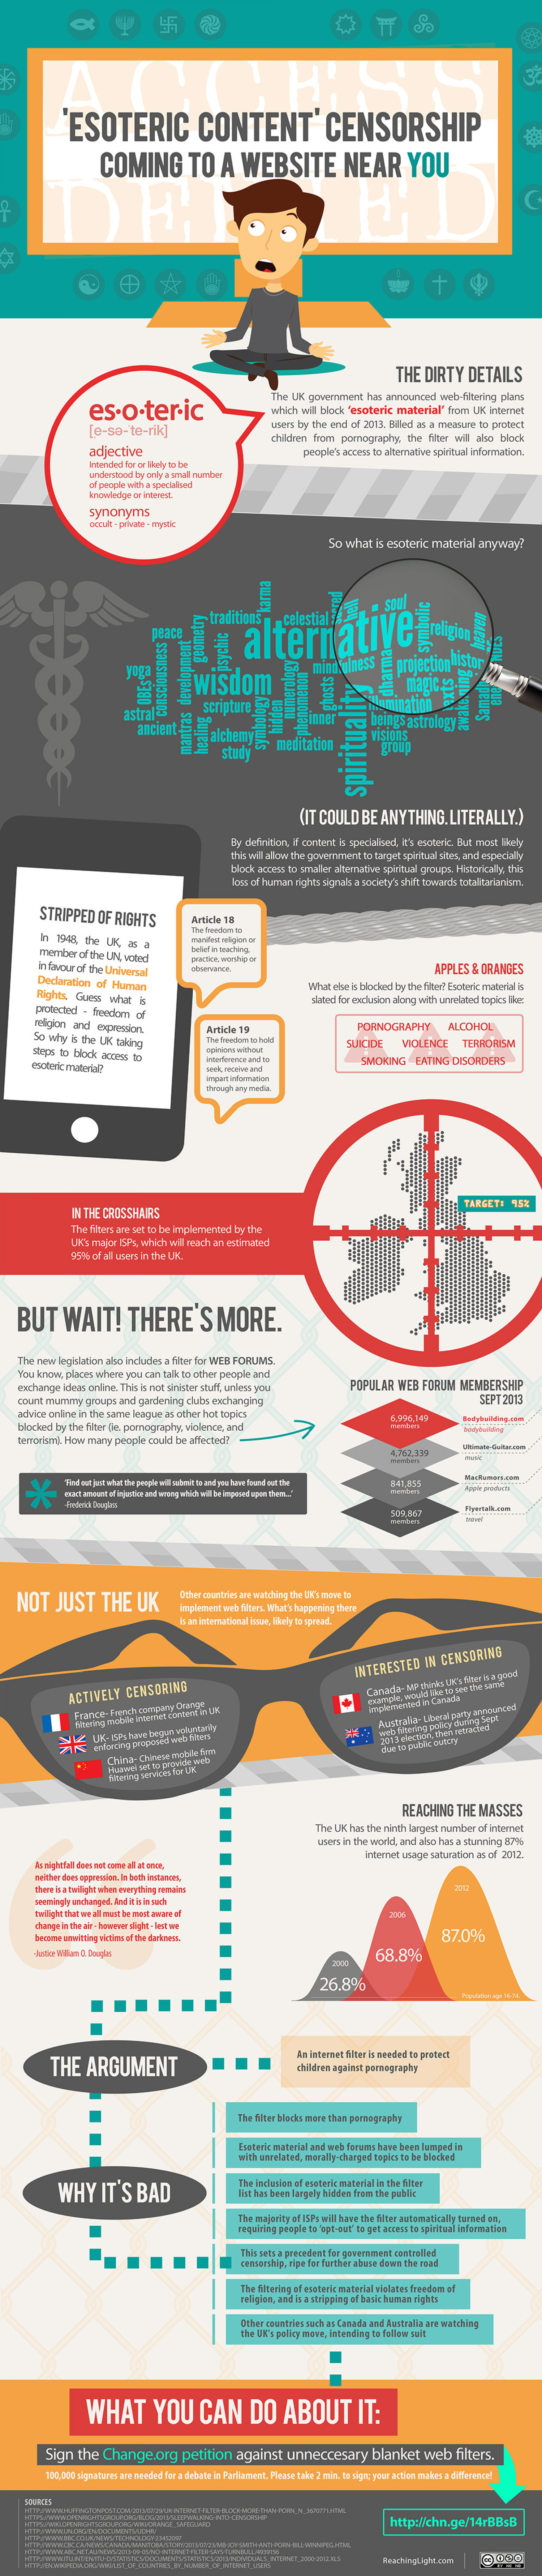 'Esoteric Content' Censorship Coming to a Website Near You Infographic